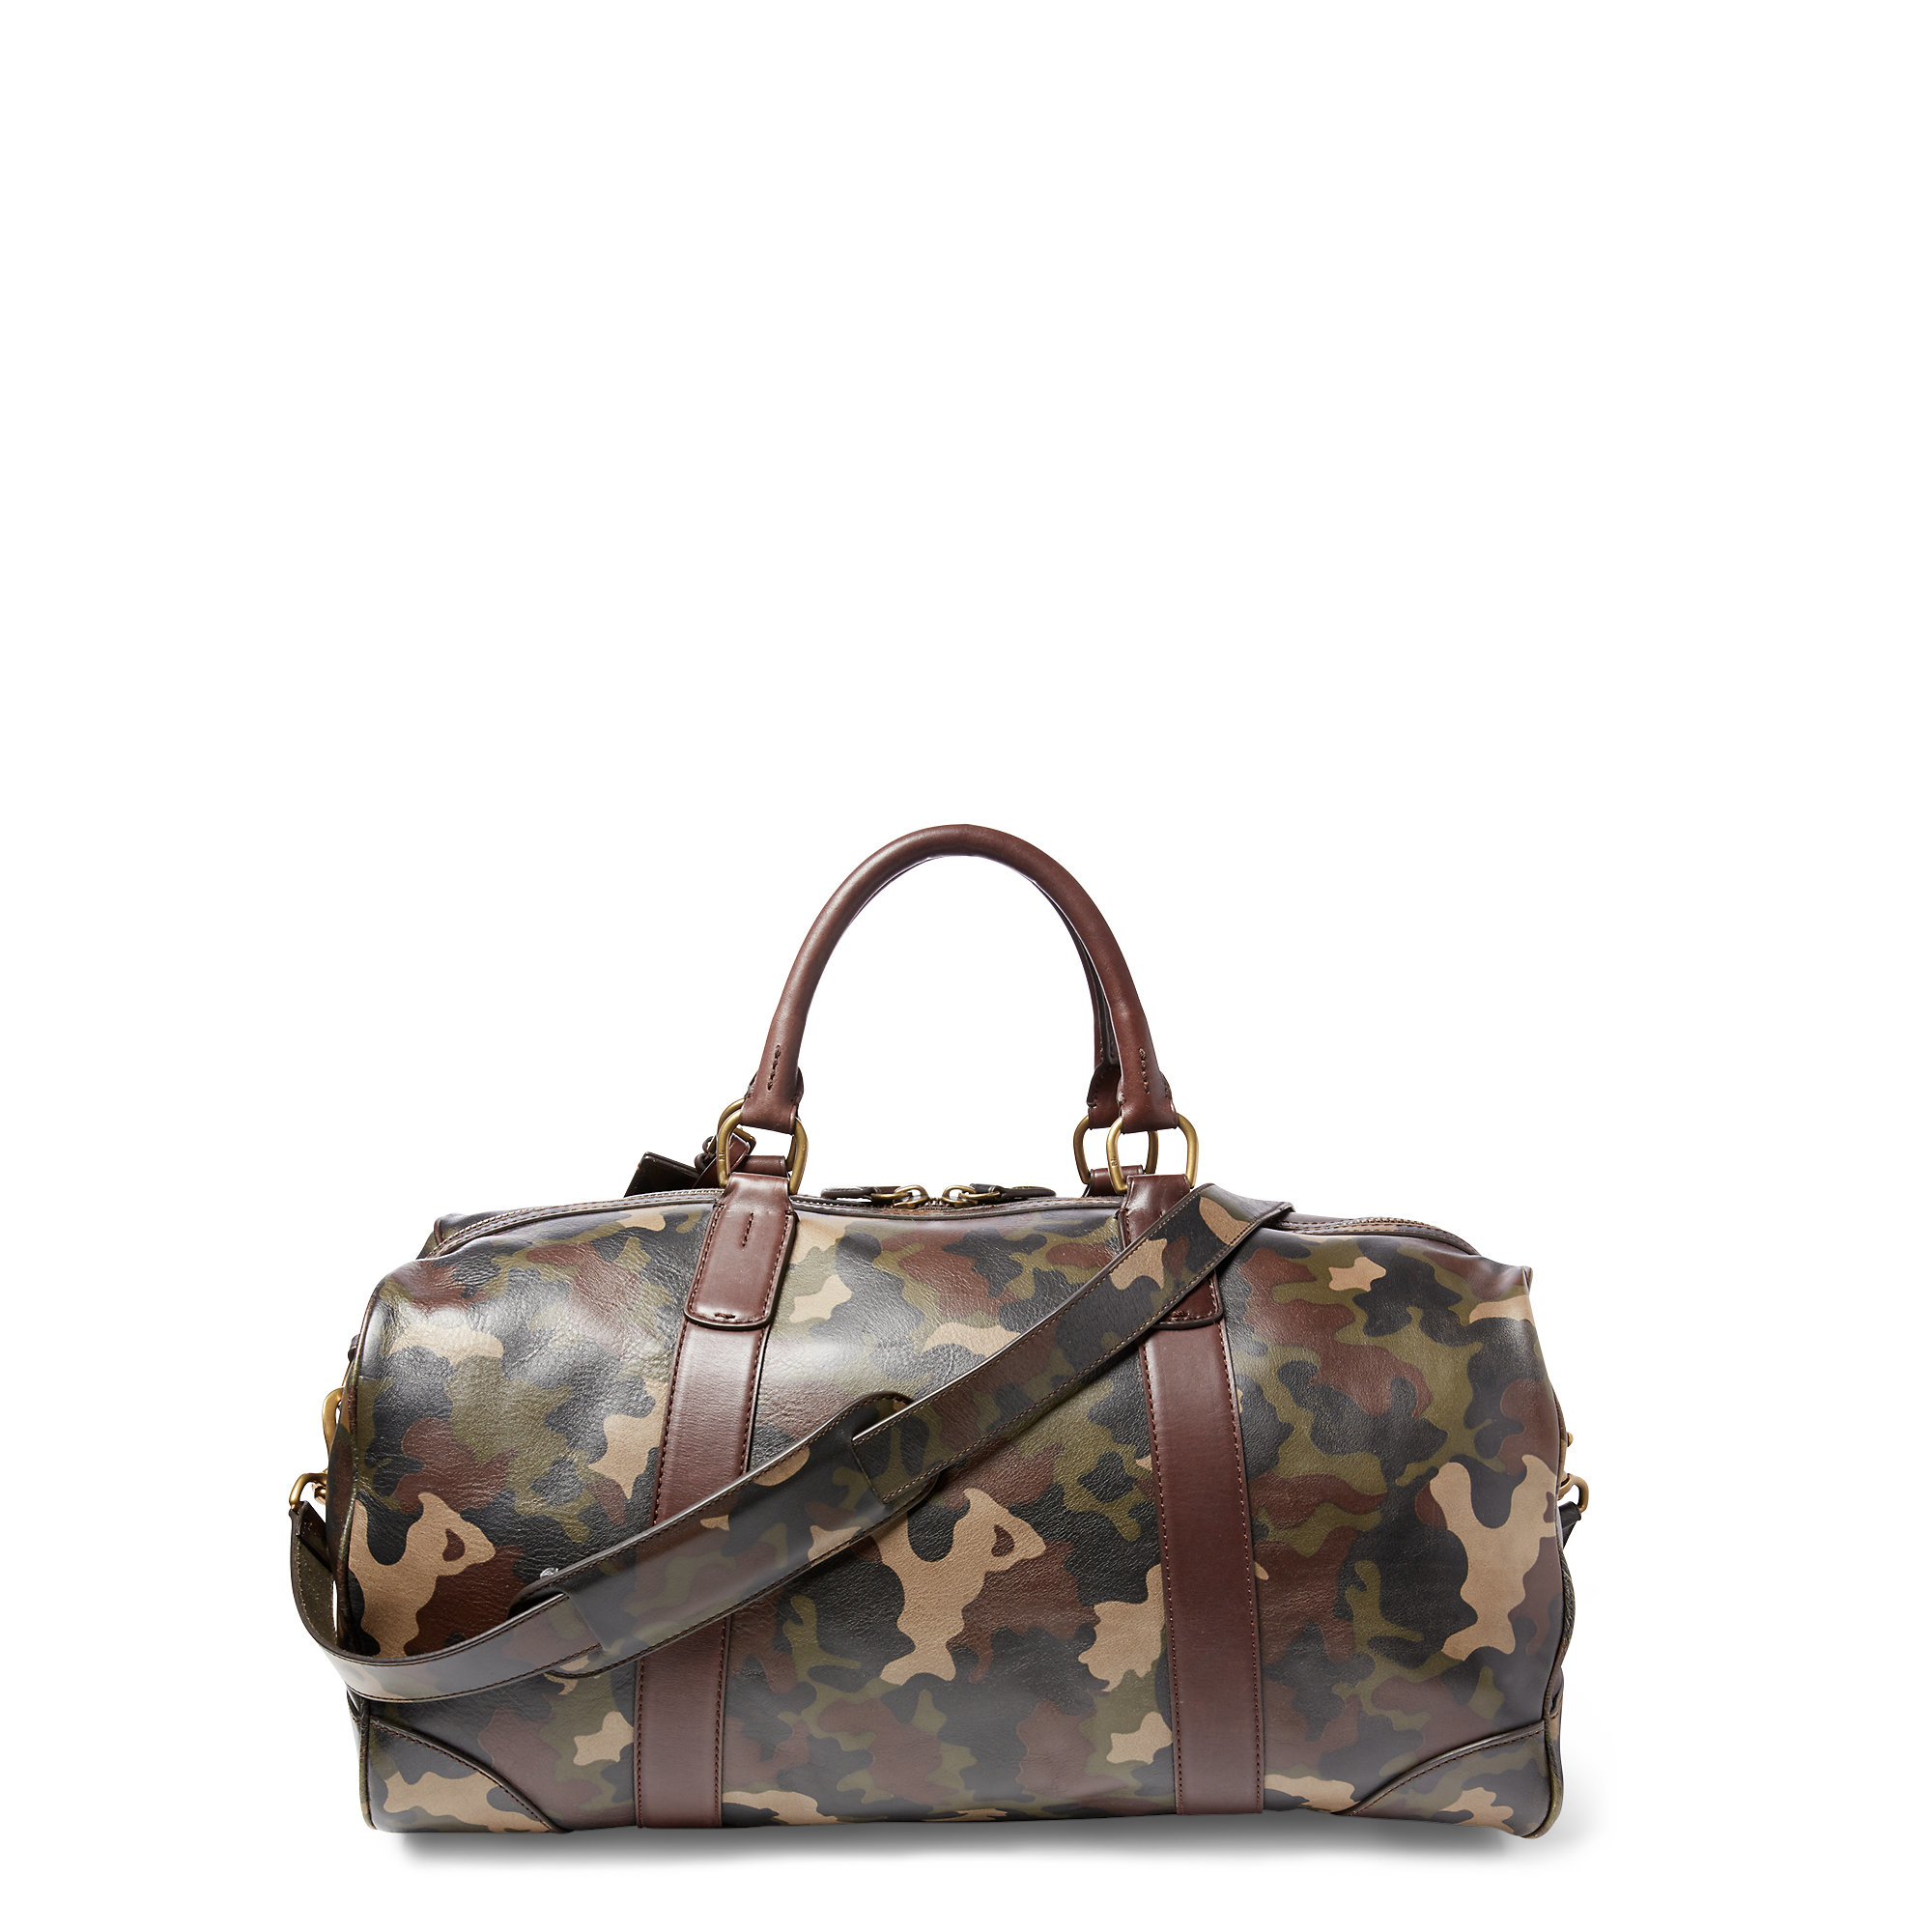 febcbd82 Polo Ralph Lauren Gray Camouflage Leather Duffel Bag for men